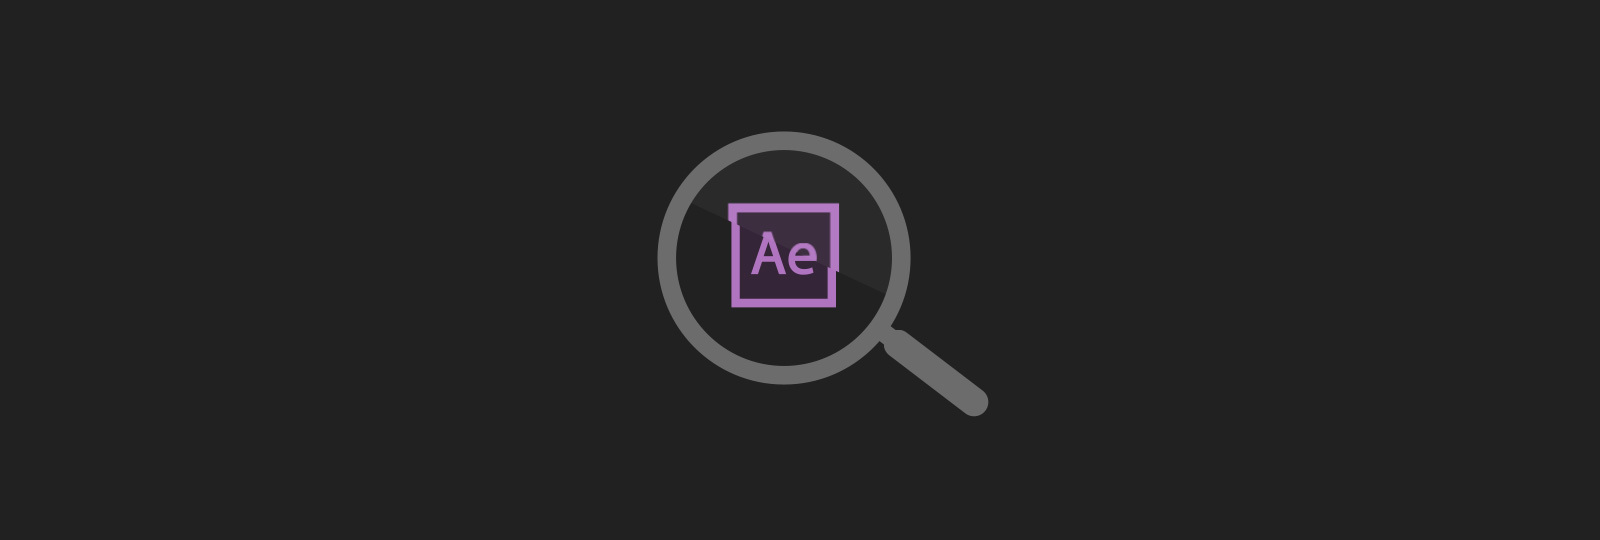 How To Create A Zoom Blur Transition In After Effects | Motion Array